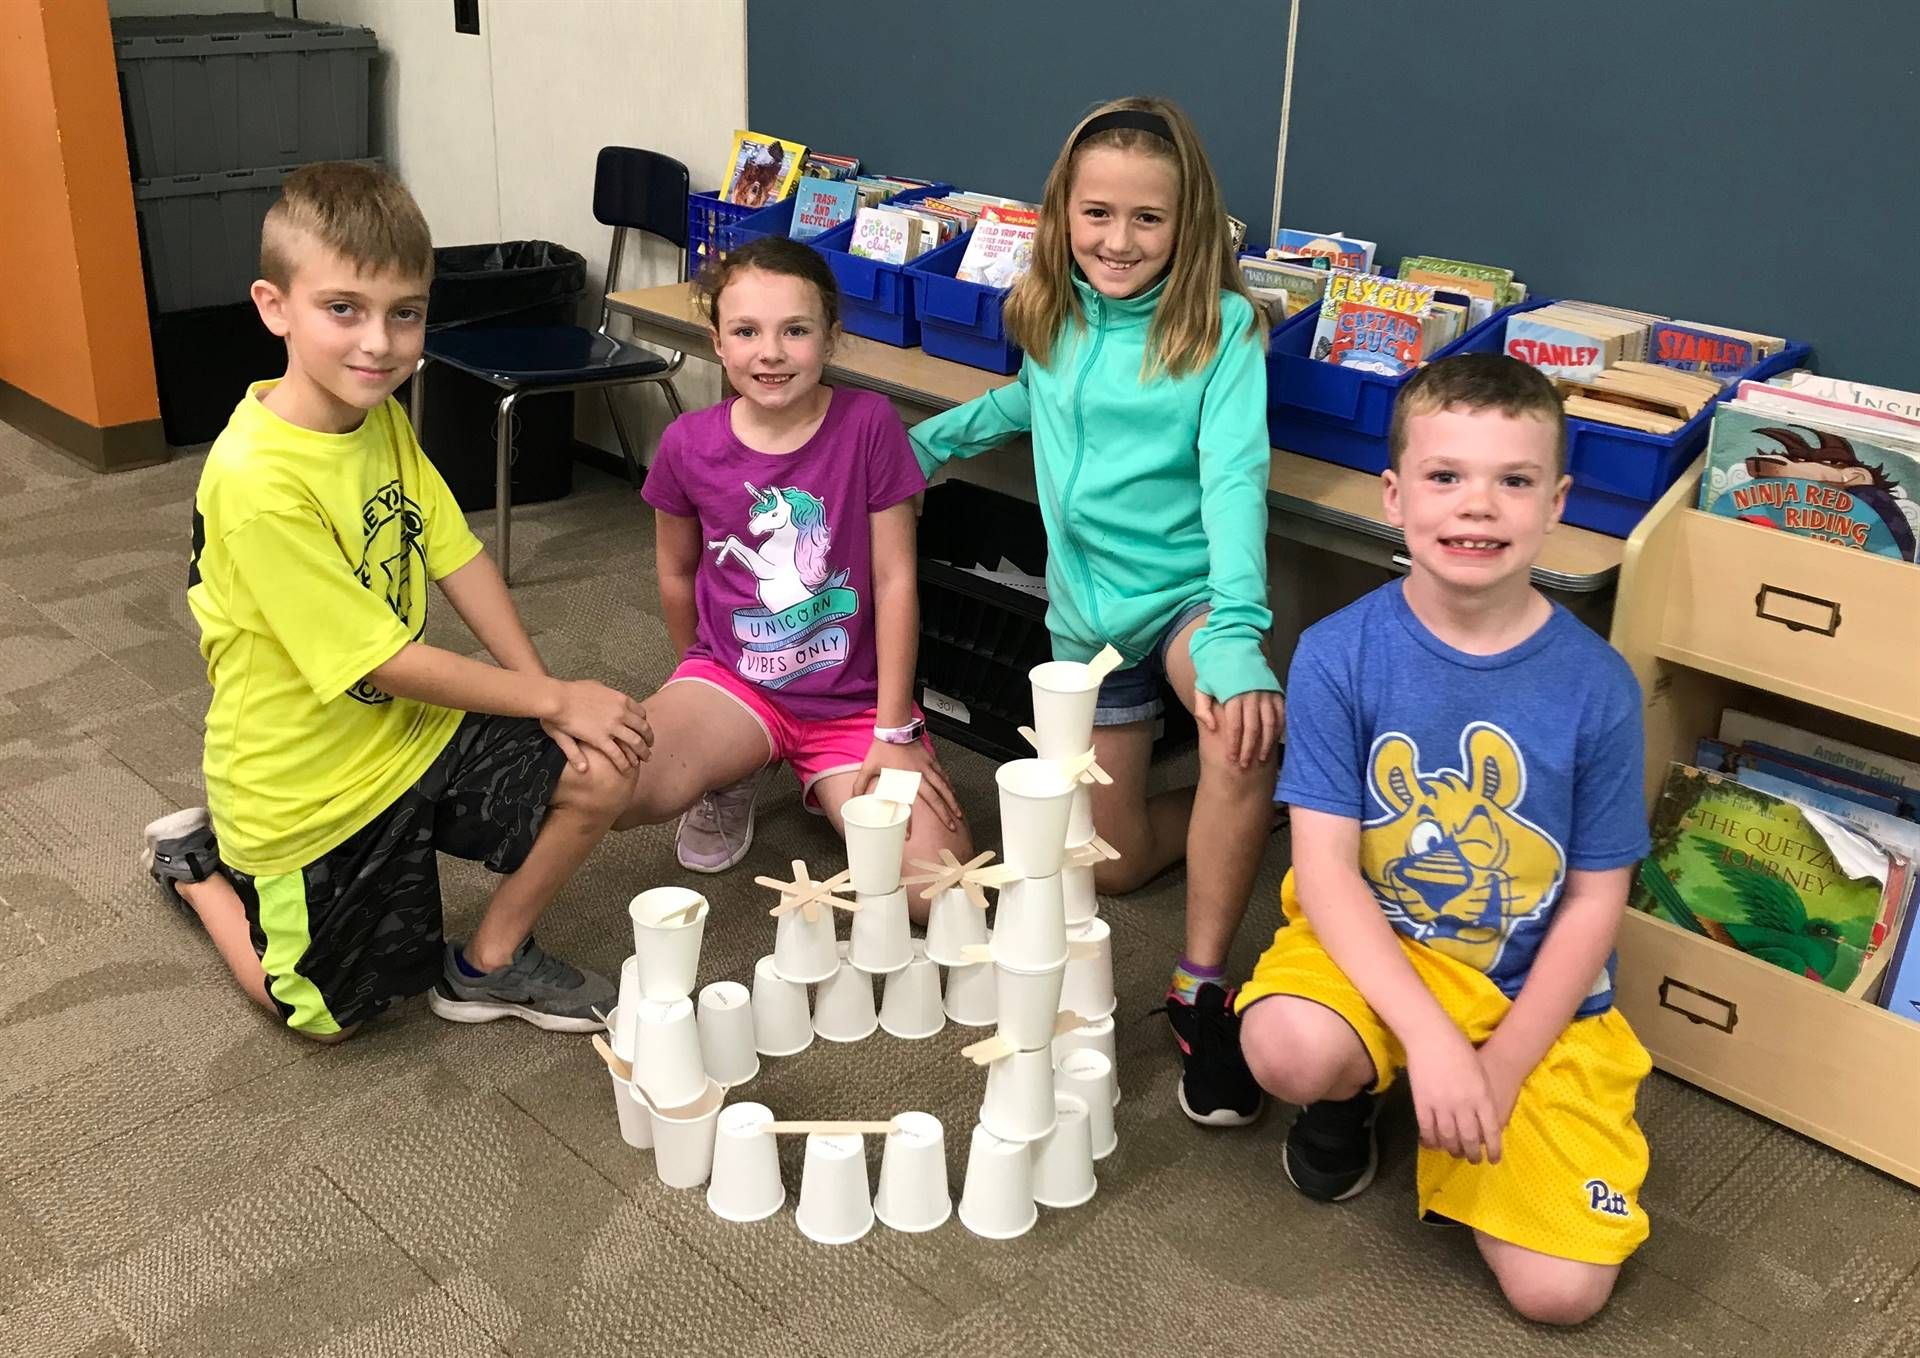 Four Second Graders With Their STEAM Challenge Tower